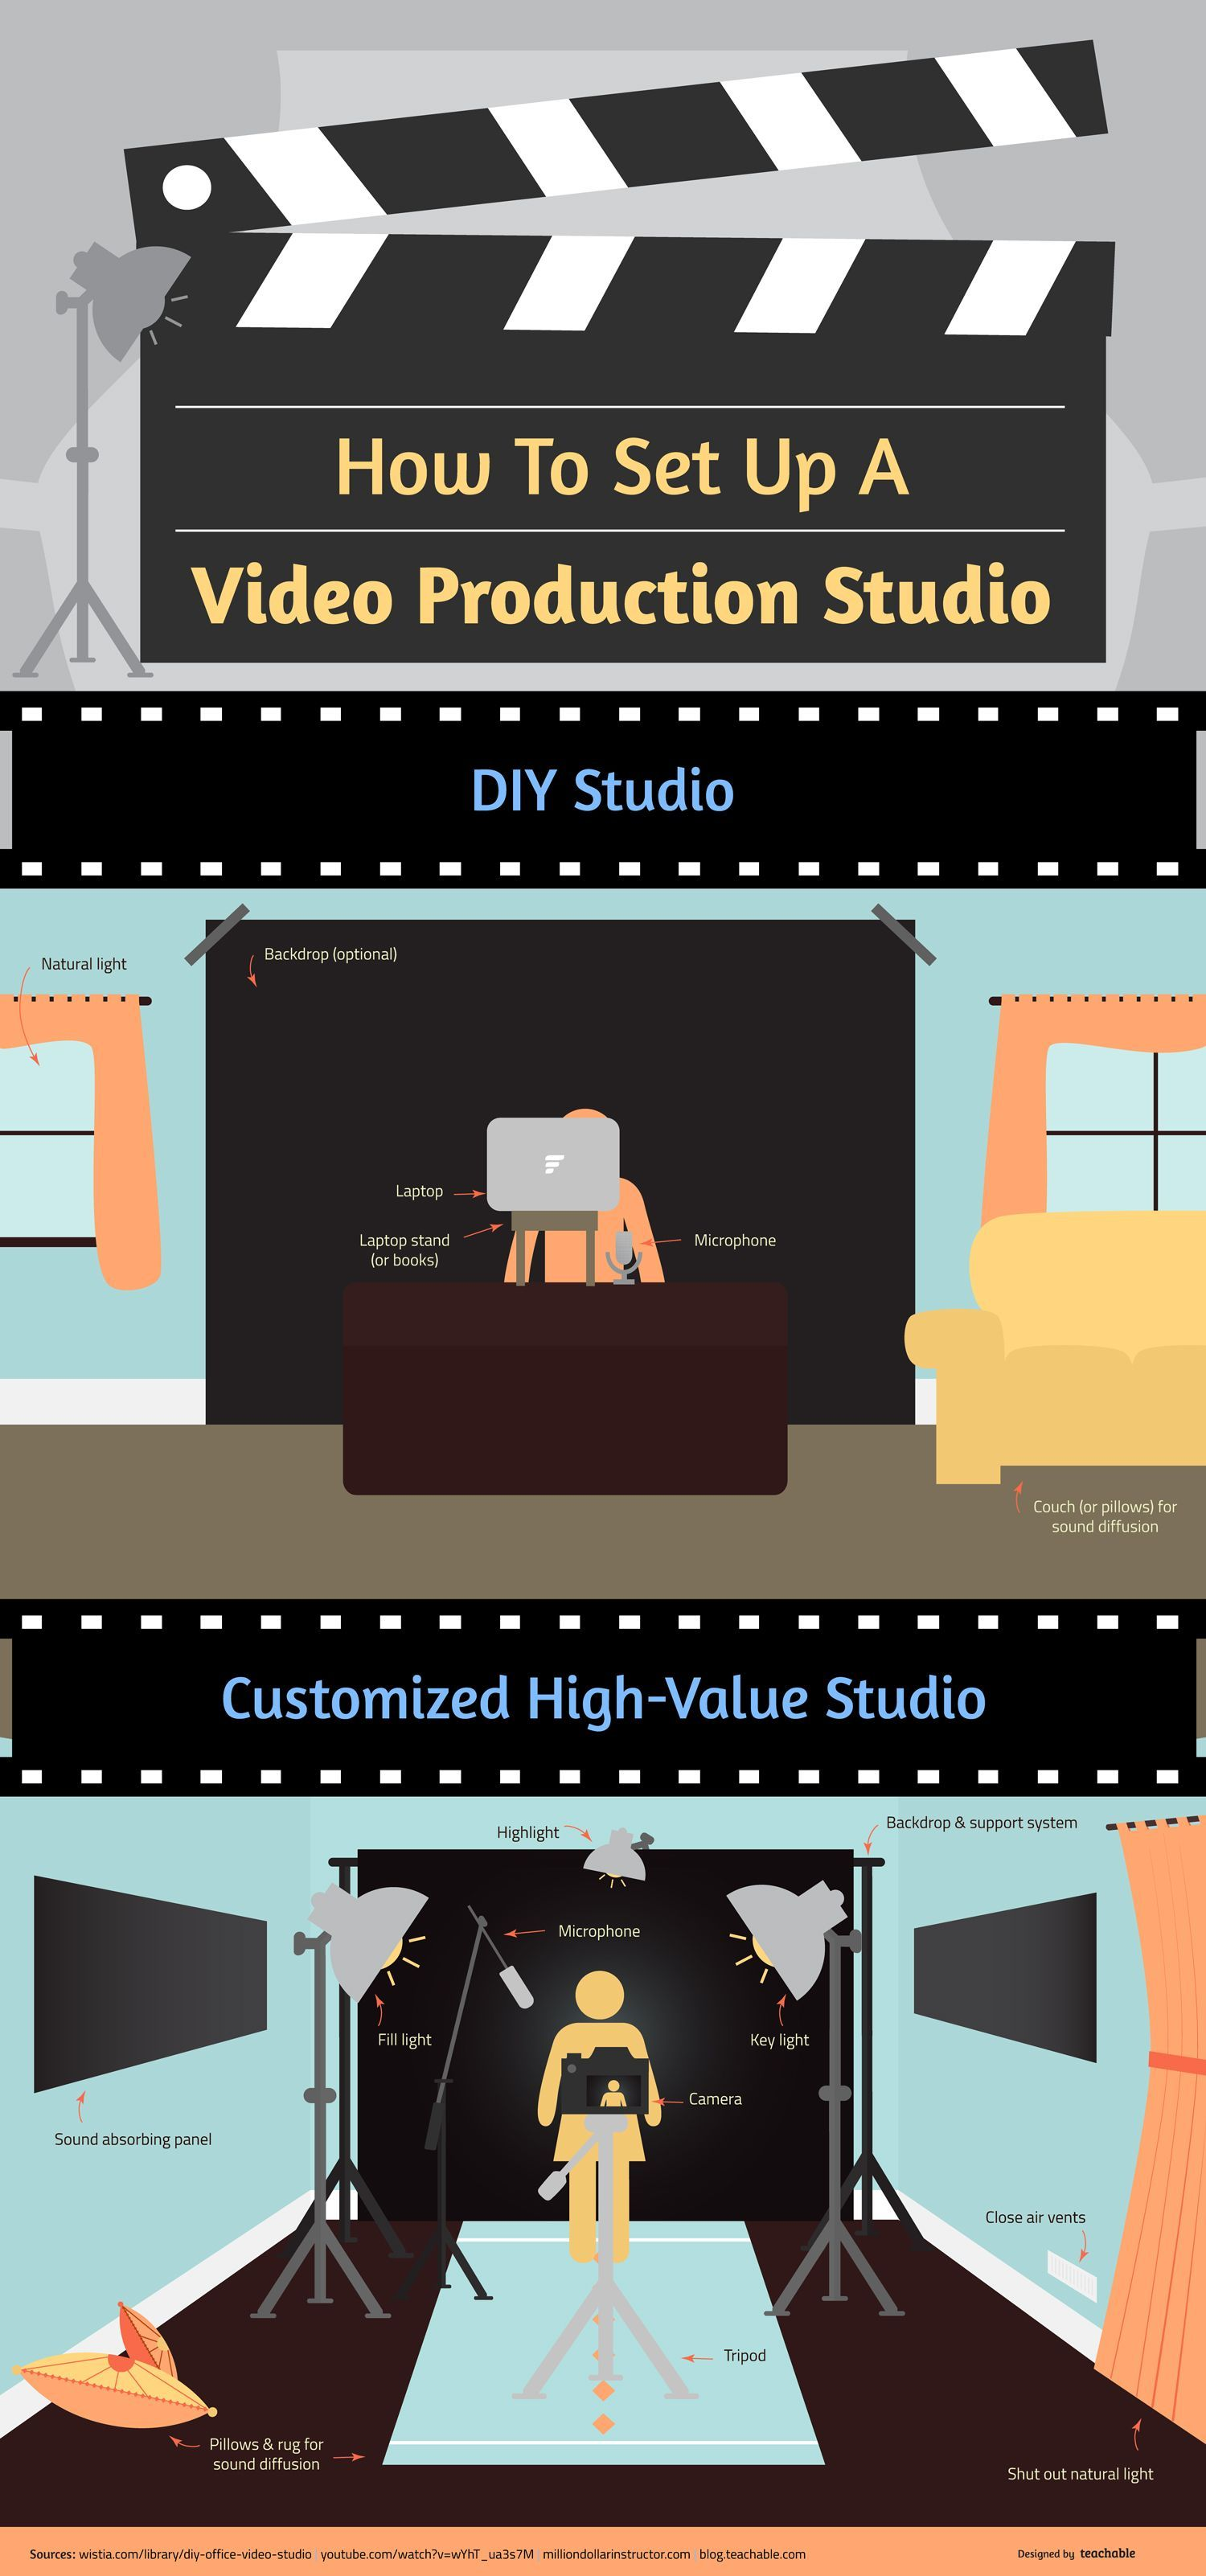 To DIY: Home Video Recording Studio Setup + Video Editing Creating engaging videos at home doesn't have to be expensive or technical, here are our tips and go-to shopping guide for an at-home studio set up that you can DIY yourself and list of high ROI equipment. Click to get our shopping list now!Creating engaging videos at home doesn't have to be ...